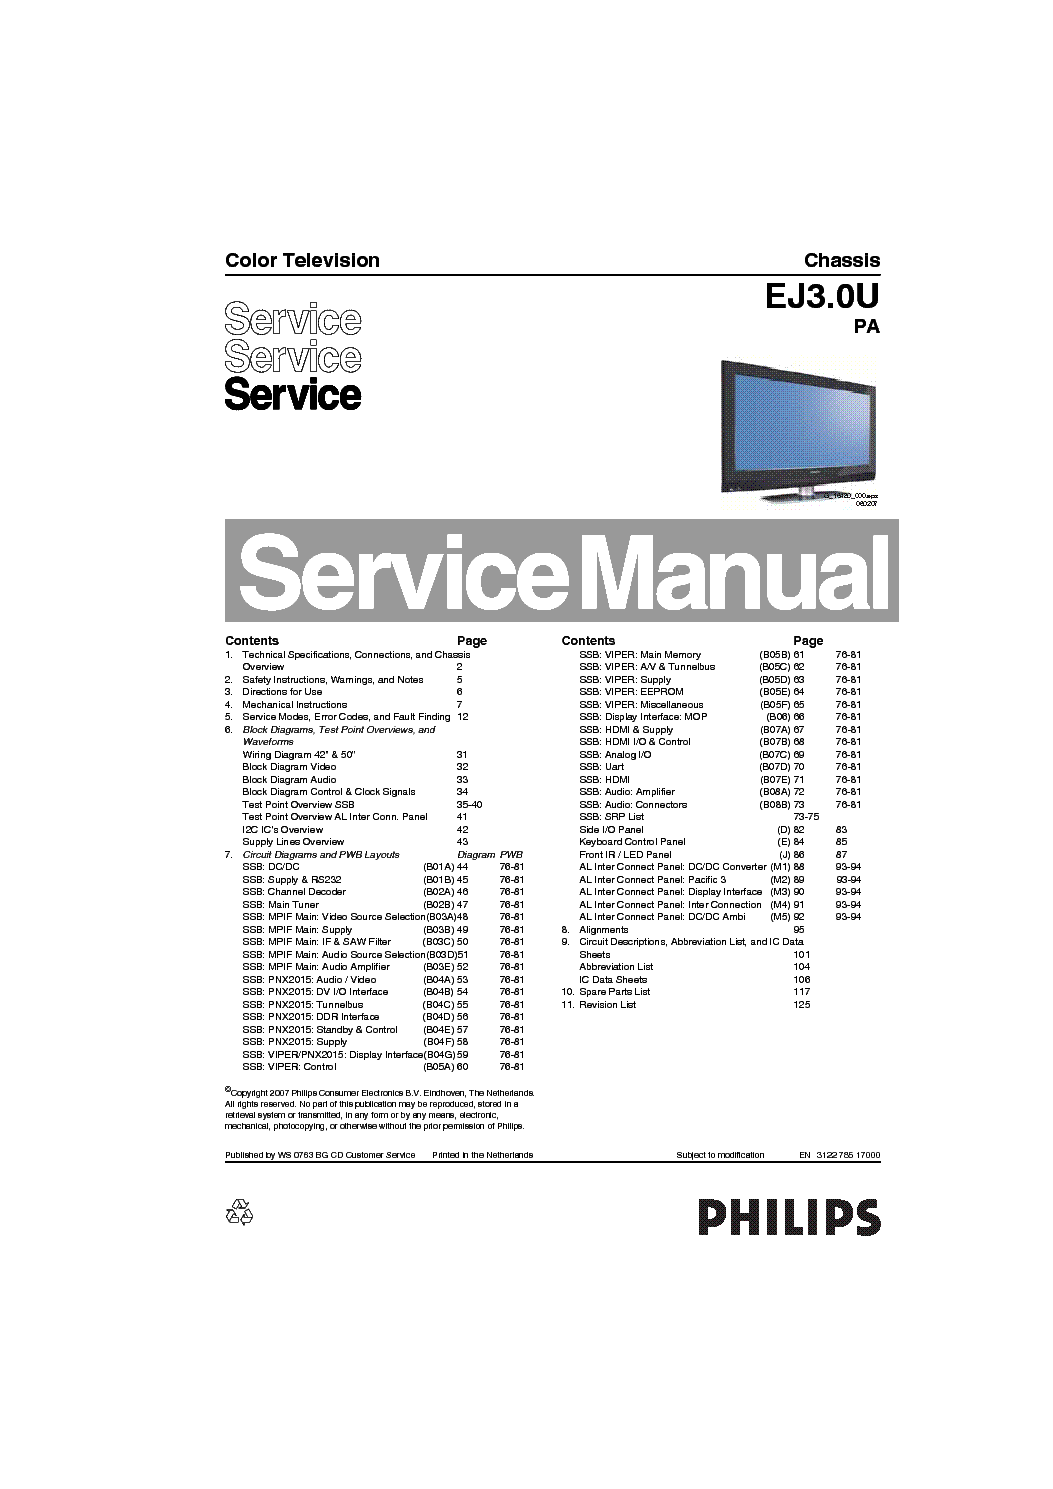 PHILIPS CHASSIS EJ3.0U-PA SM service manual (1st page)